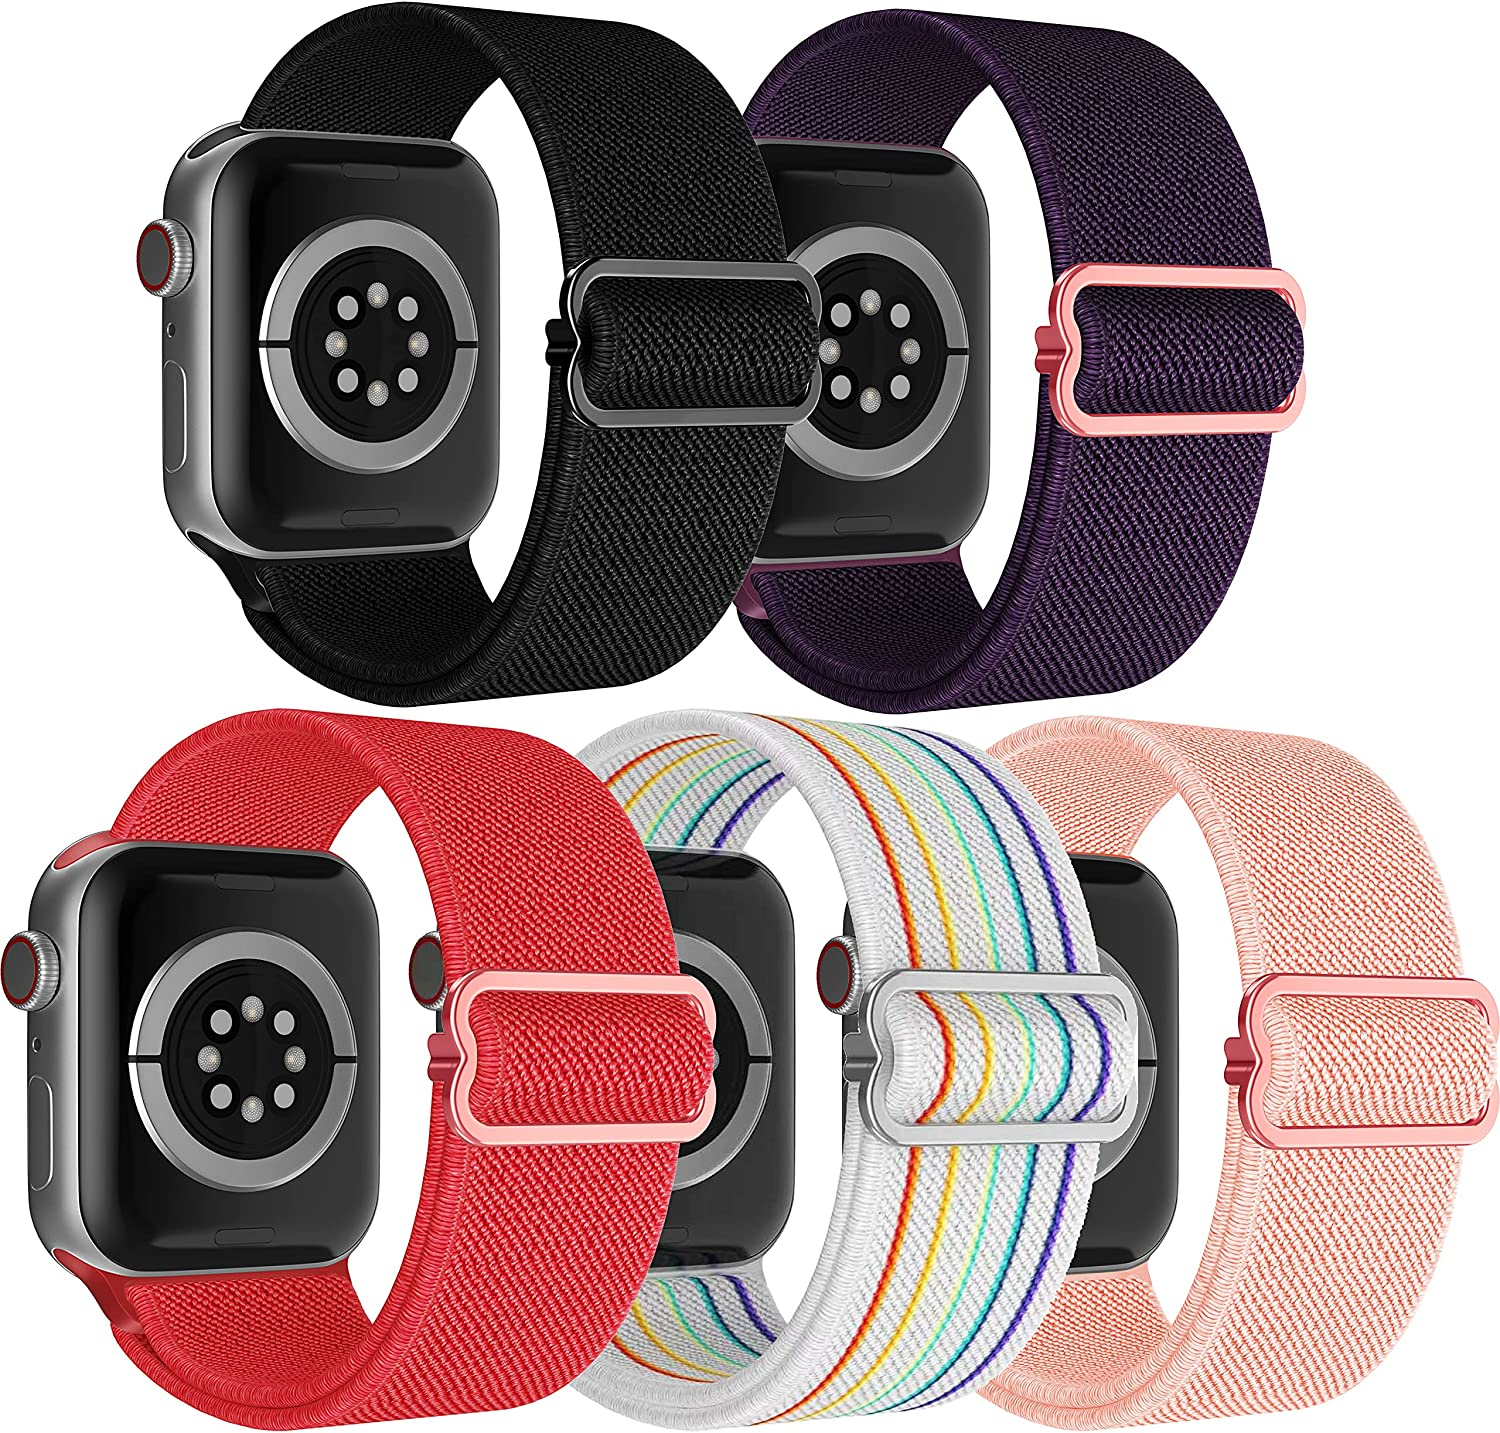 PITIKAI 5 Packs Stretchy Nylon Solo Loop Bands Compatible with Apple Watch Bands 38mm 40mm 42mm 44mm Women Men, Adjustable Braided Sport Elastics Wristband for iWatch Series 6/5/4/3/2/1/SE